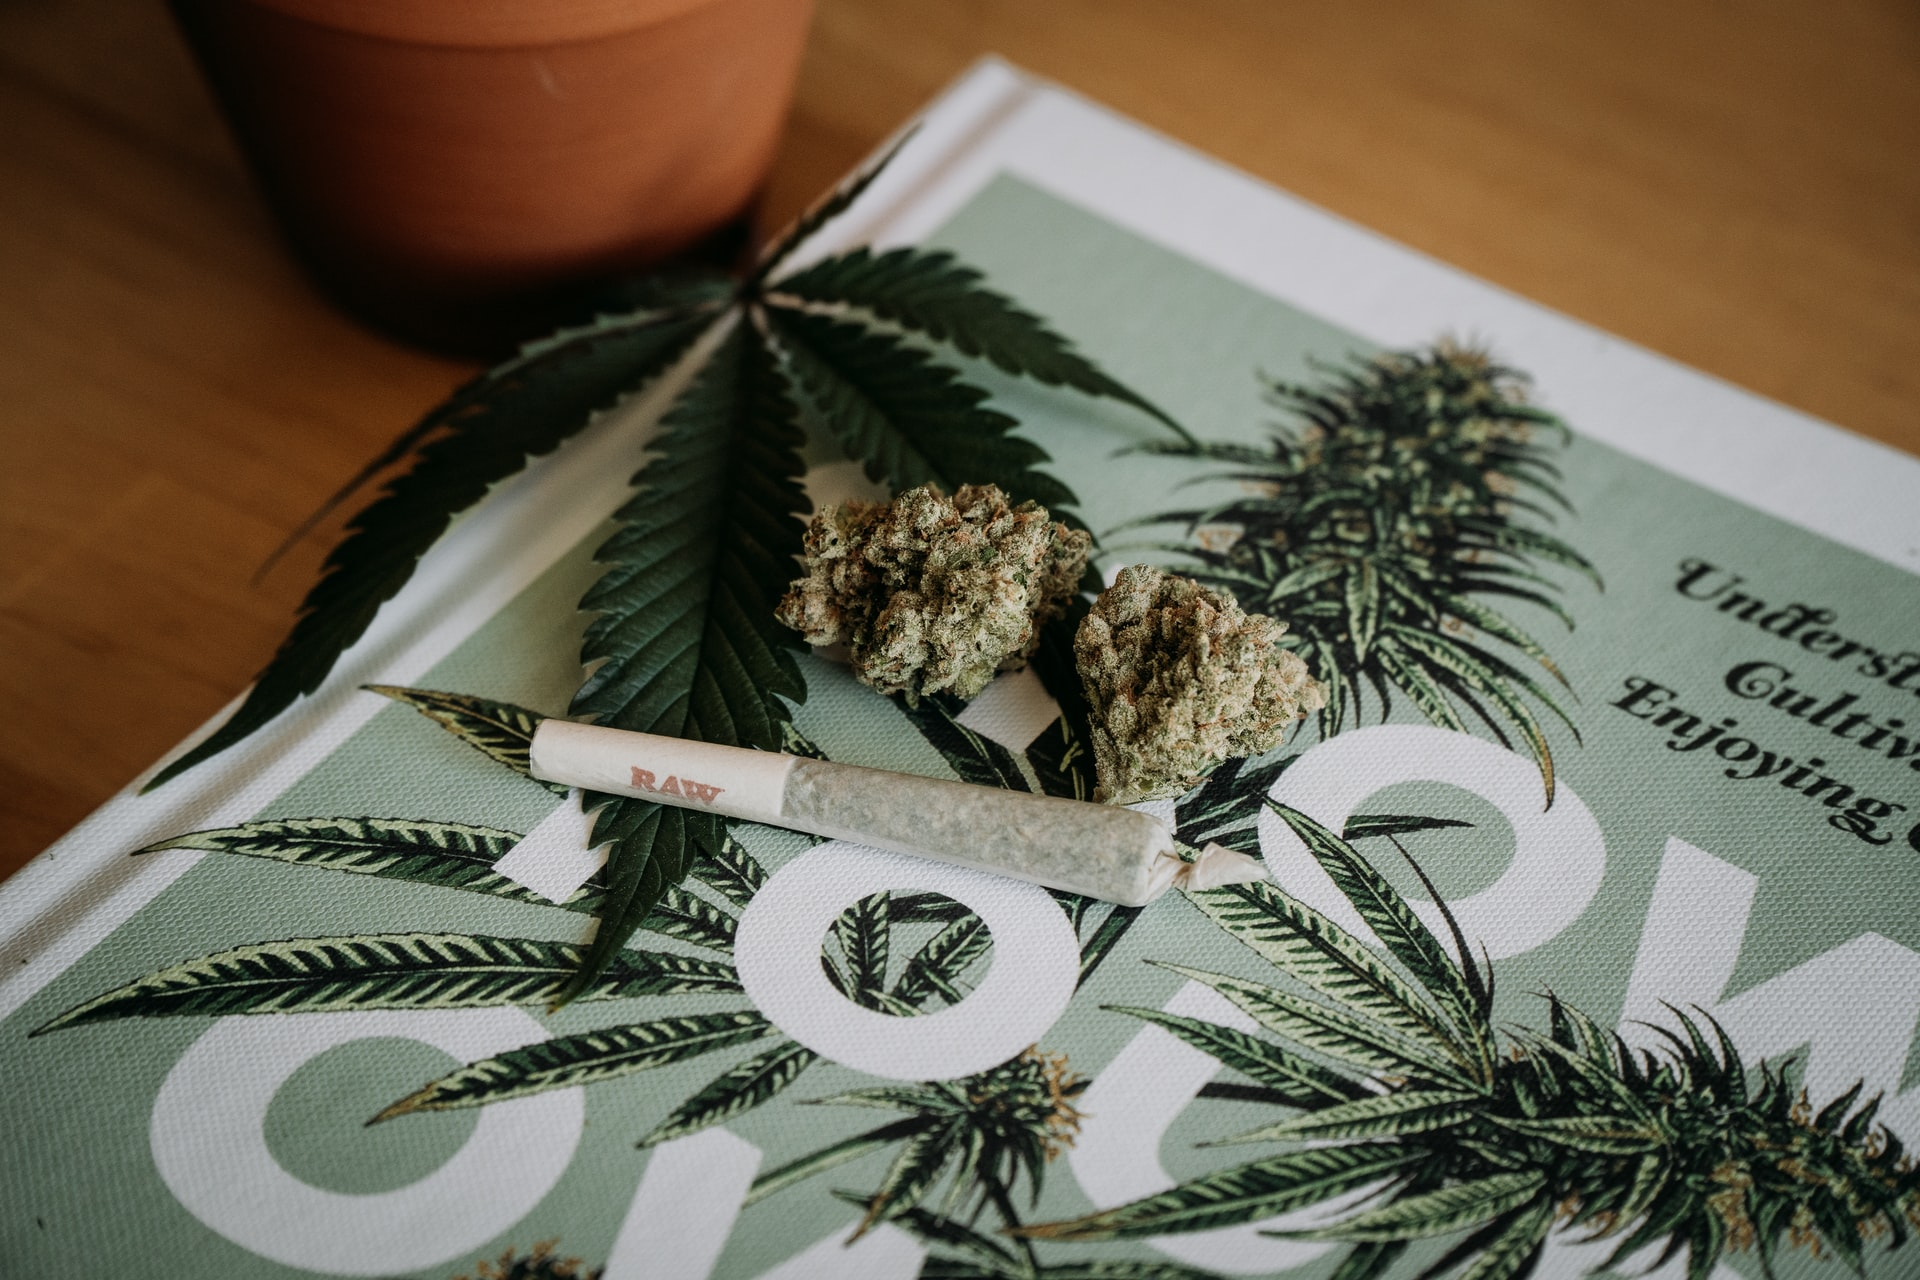 joint and buds sitting on magazine cover